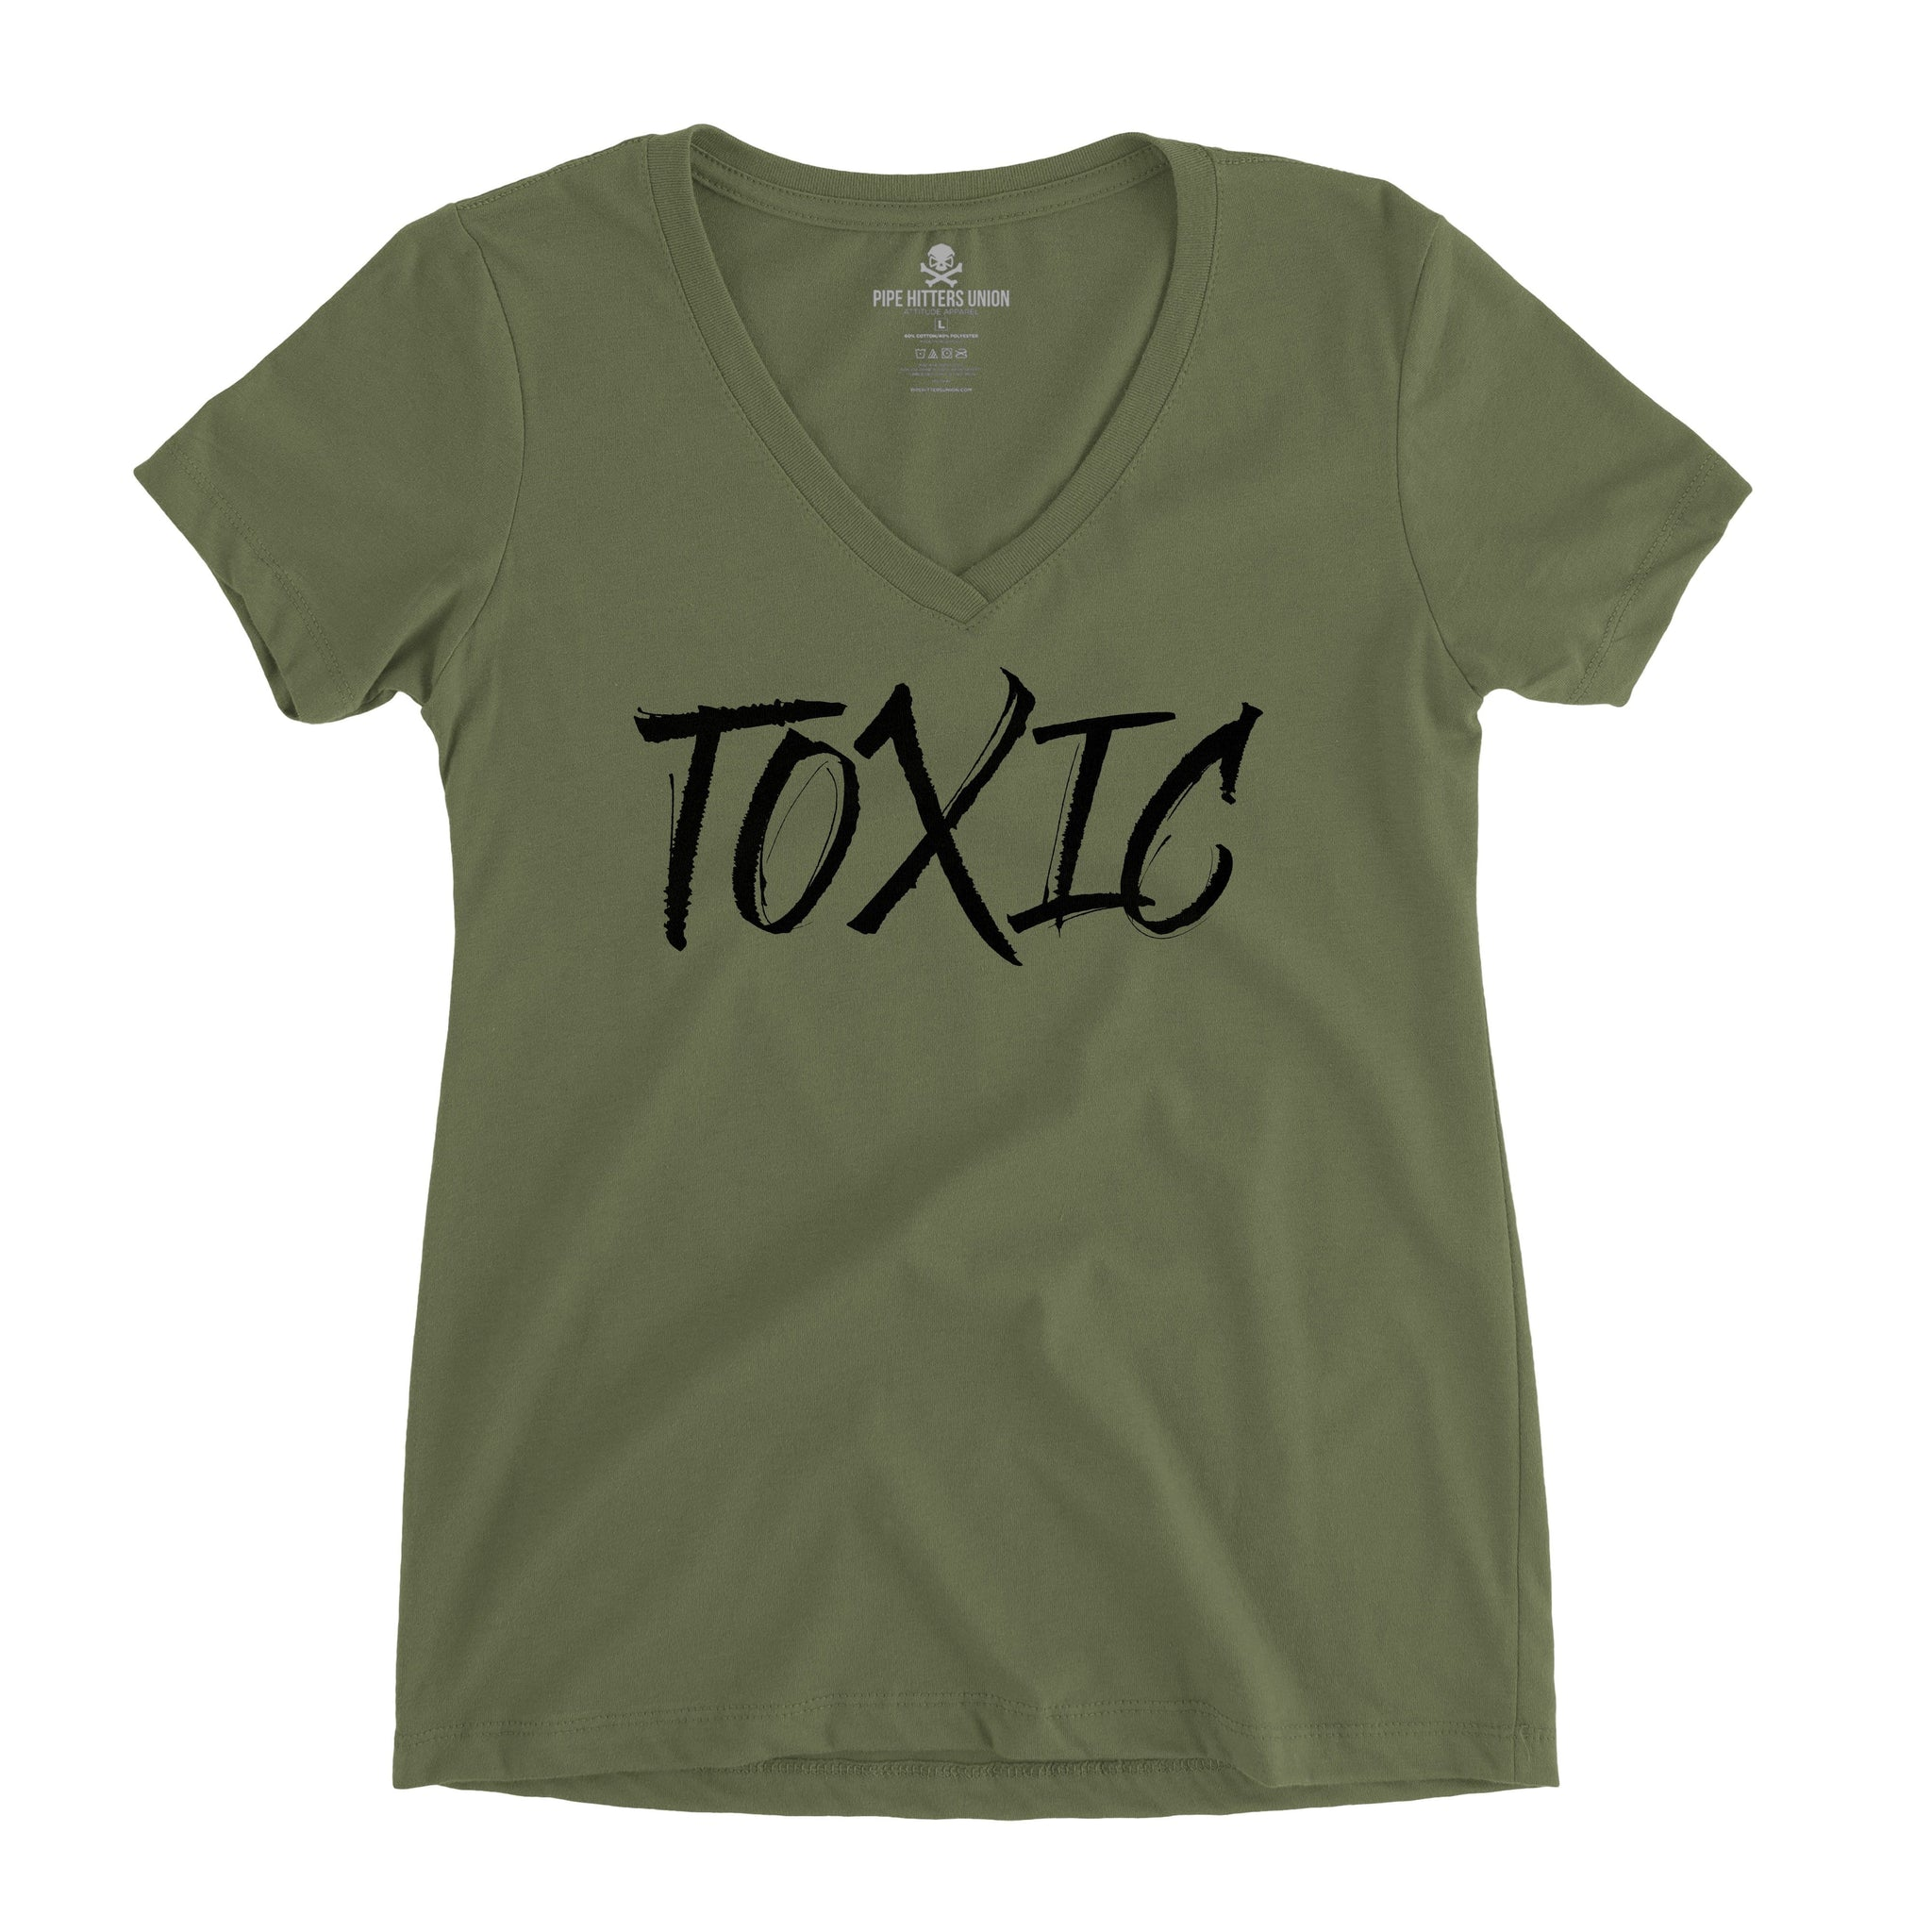 Toxic (V-Neck) - Pipe Hitters Union